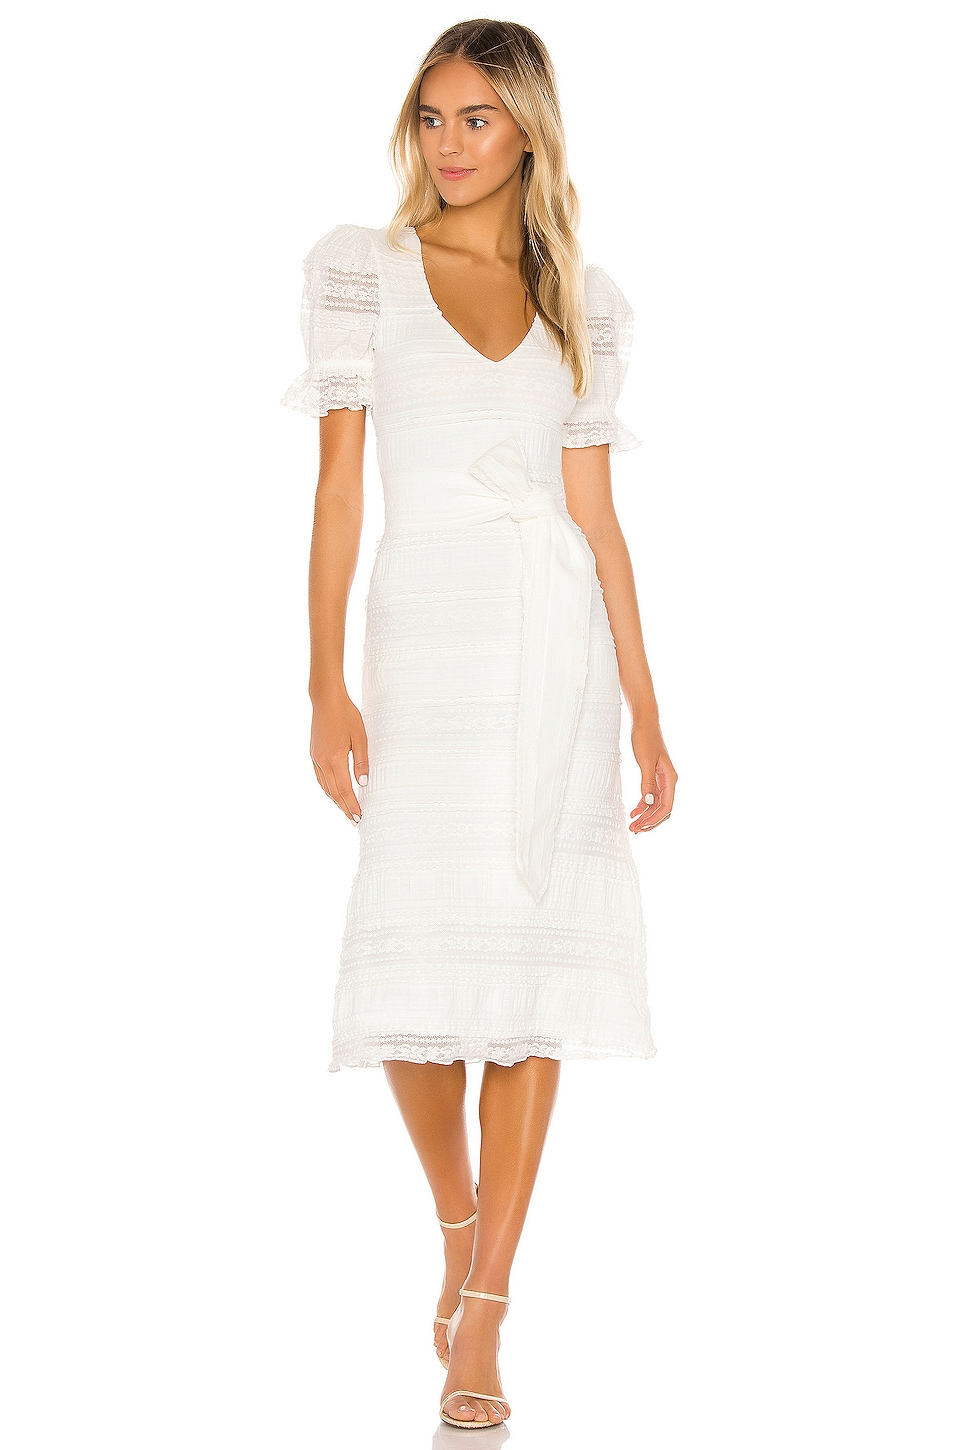 Quinn Midi Dress             Tularosa                                                                                                       CA$ 226.98 11